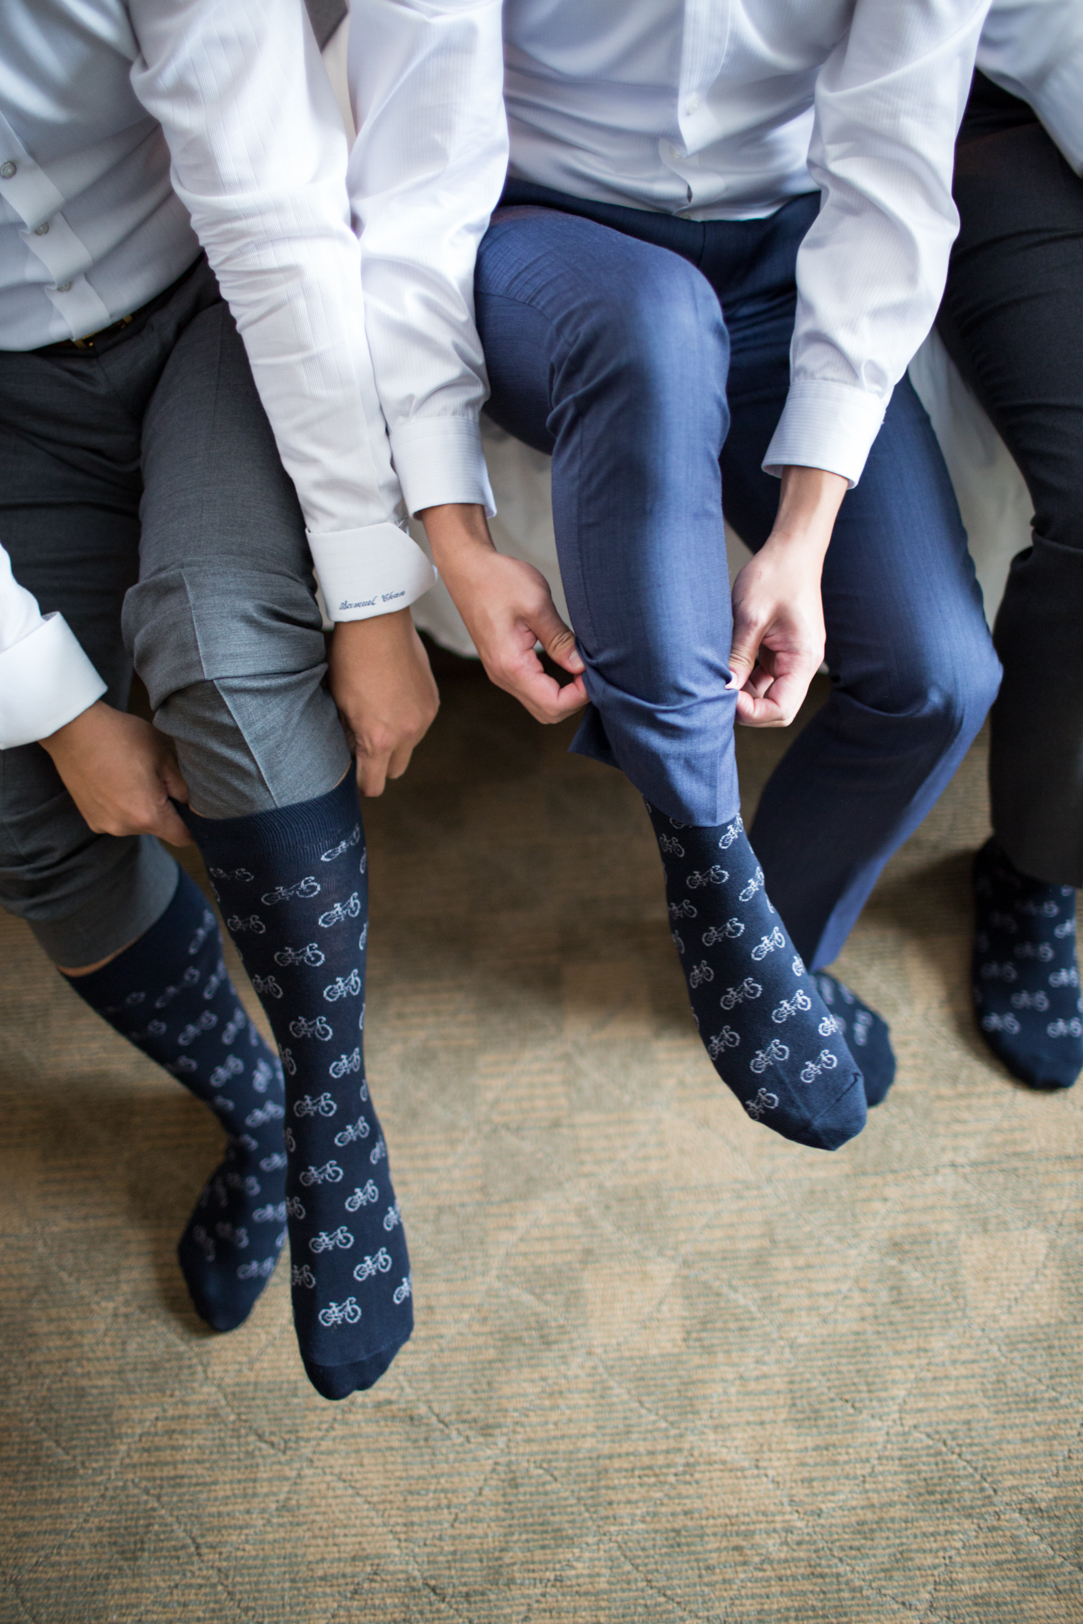 groomsmen gift ideas socks